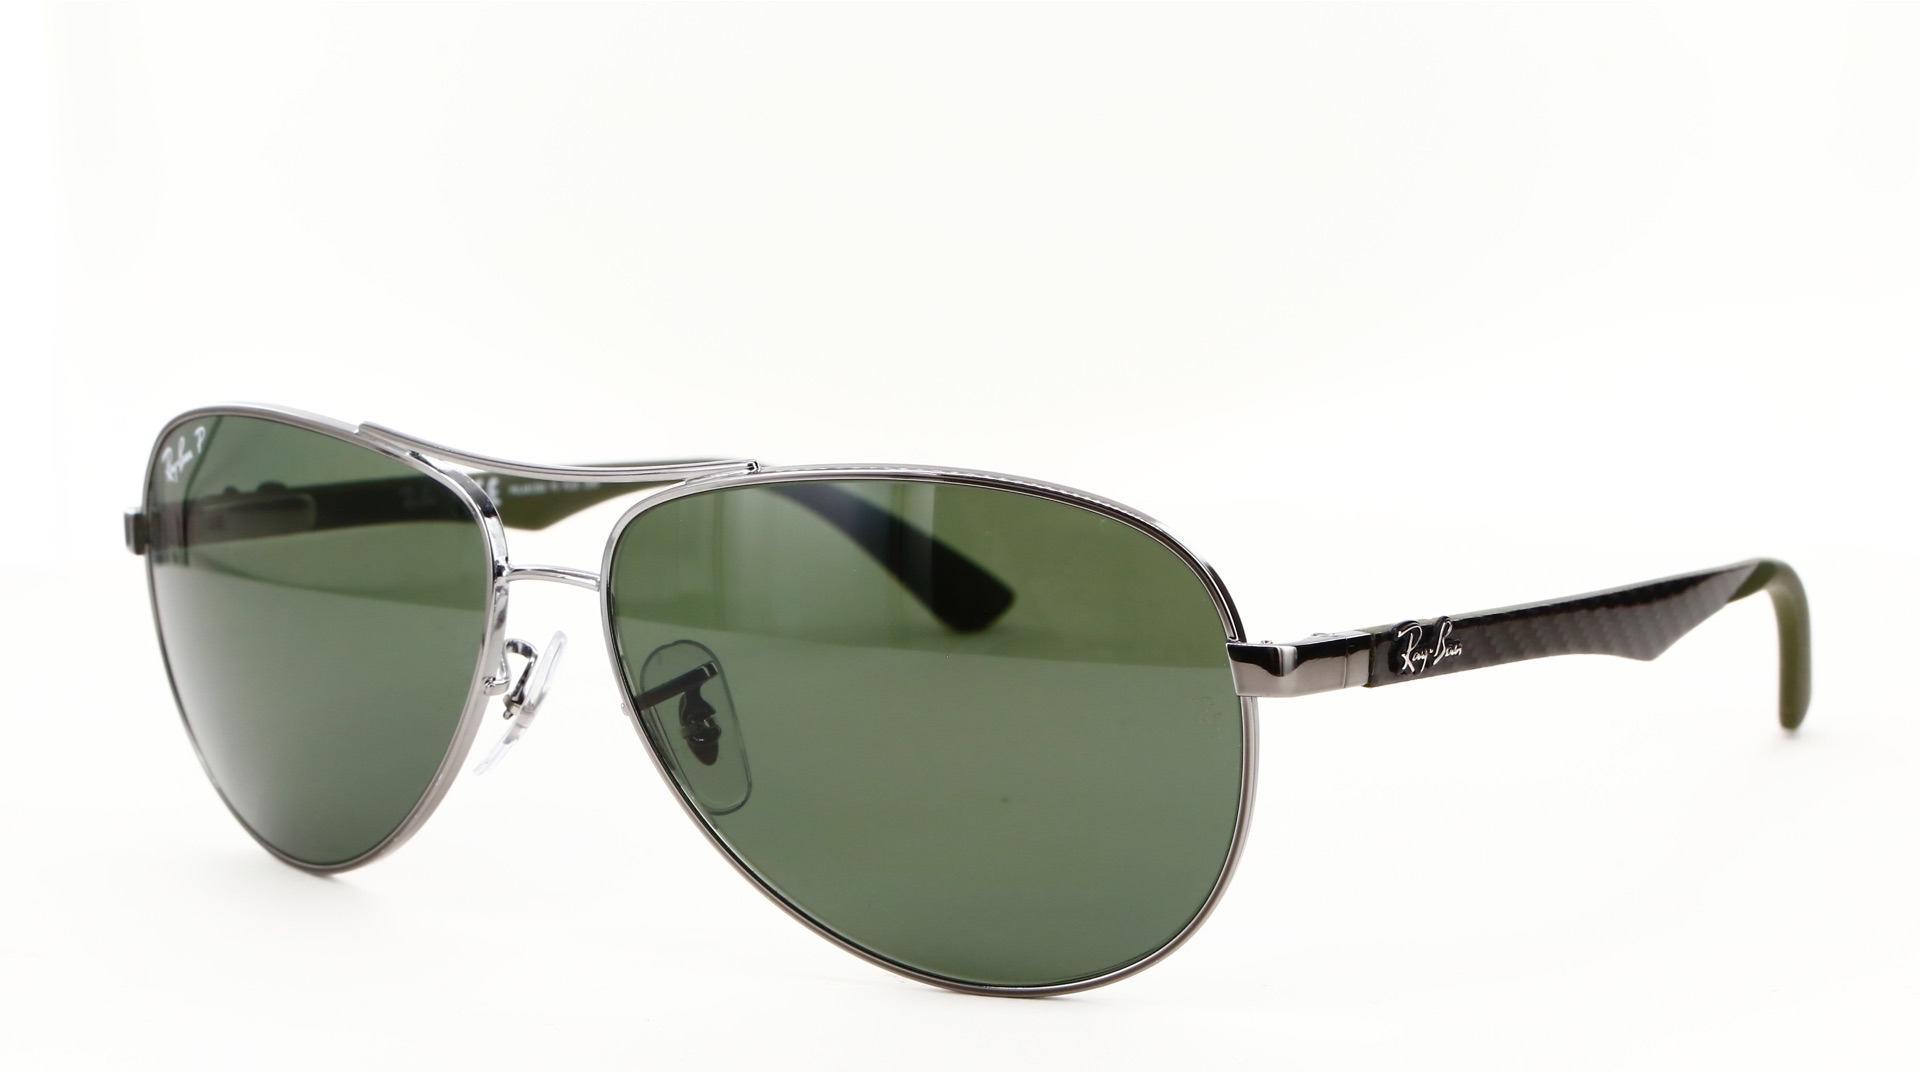 Ray-Ban - ref: 70493